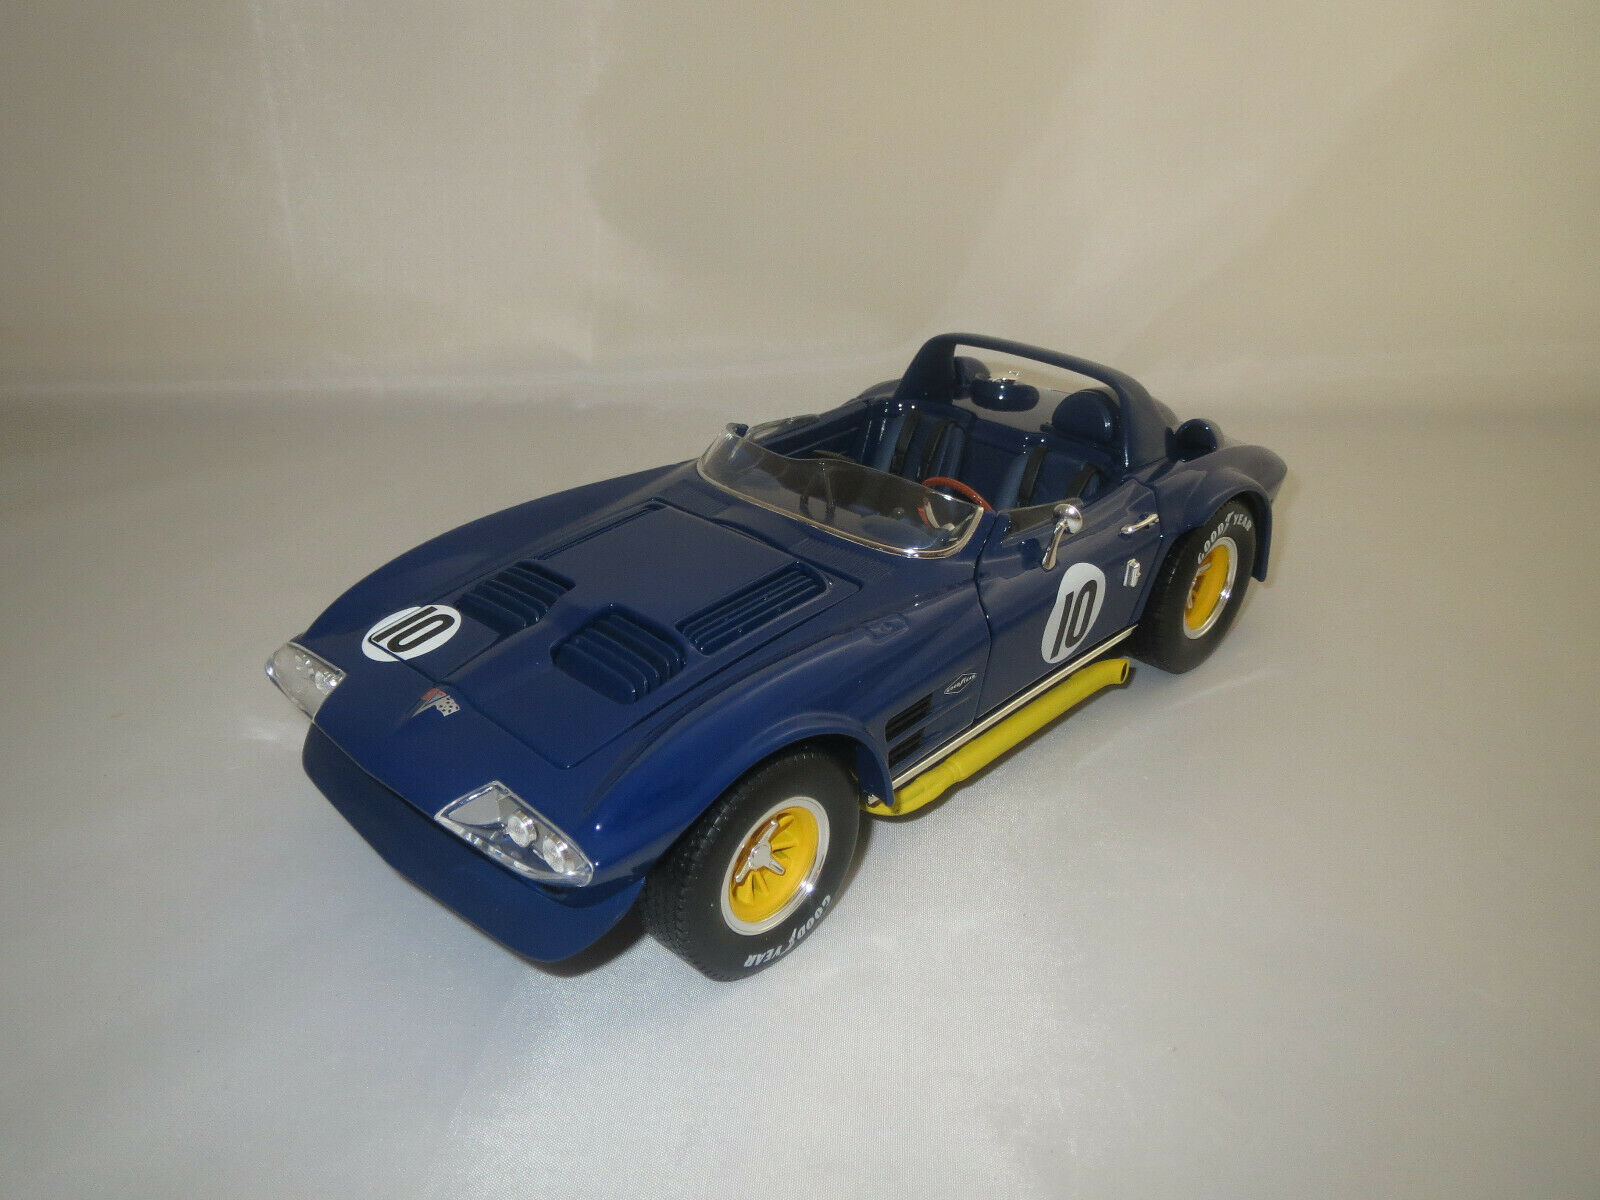 Road Signature  Chevrolet Corvette Grand Sport   10  (blau gelb) 1 18 ohne Vp.